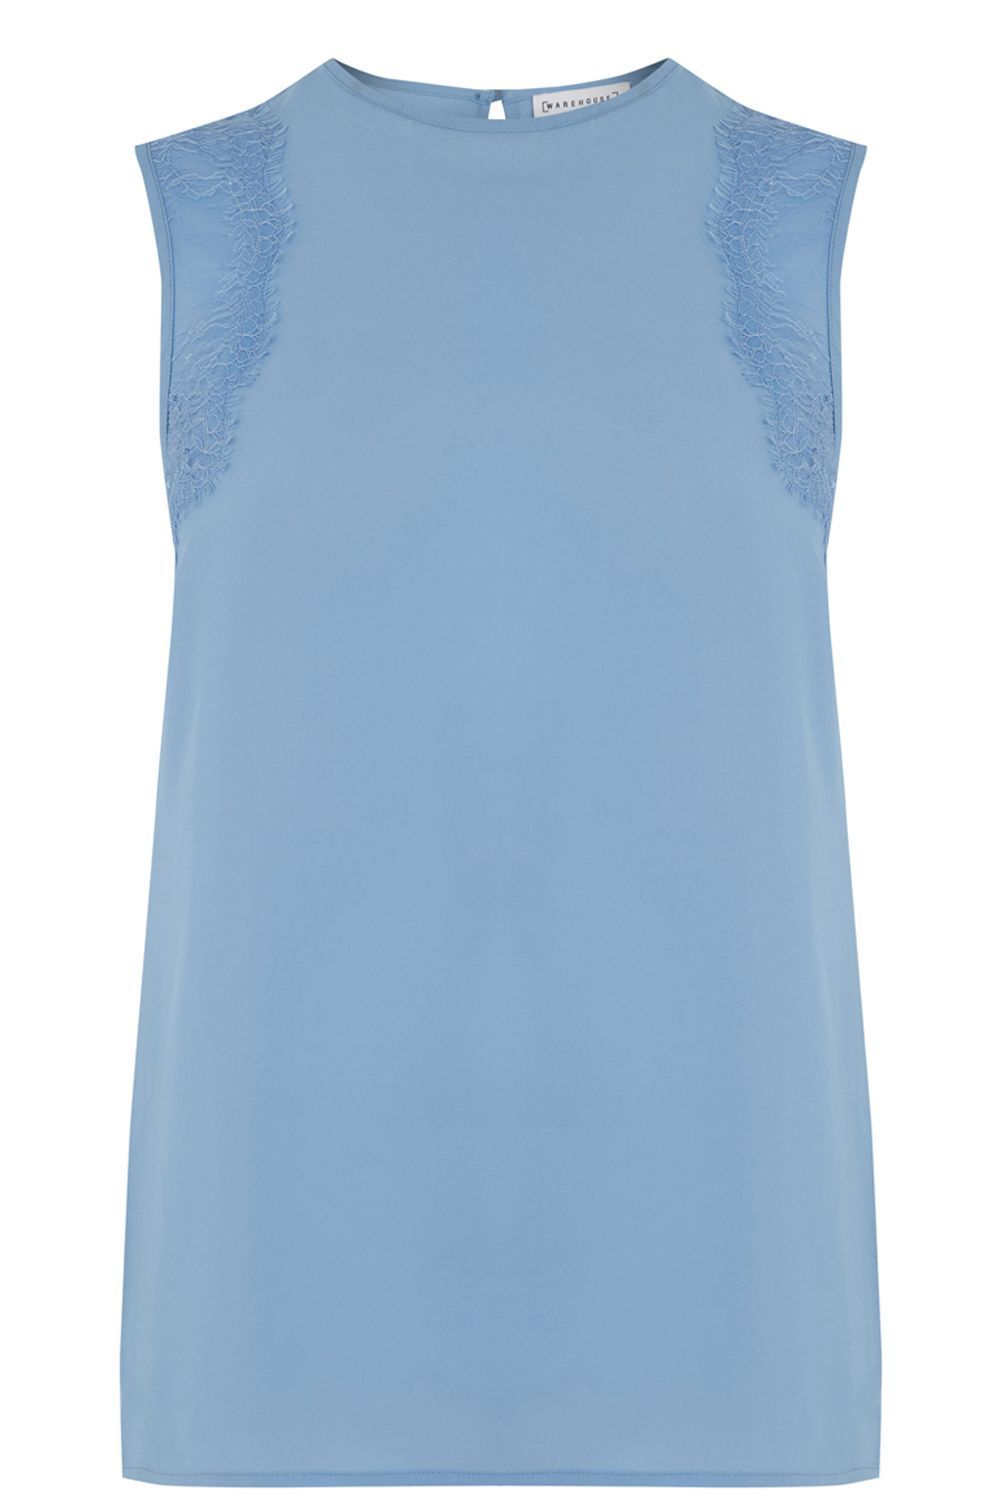 Sleeveless Lace Detail Top, Light Blue - pattern: plain; sleeve style: sleeveless; predominant colour: pale blue; length: standard; style: top; fibres: polyester/polyamide - 100%; fit: straight cut; neckline: crew; sleeve length: sleeveless; texture group: crepes; pattern type: fabric; embellishment: lace; occasions: creative work; season: a/w 2016; wardrobe: highlight